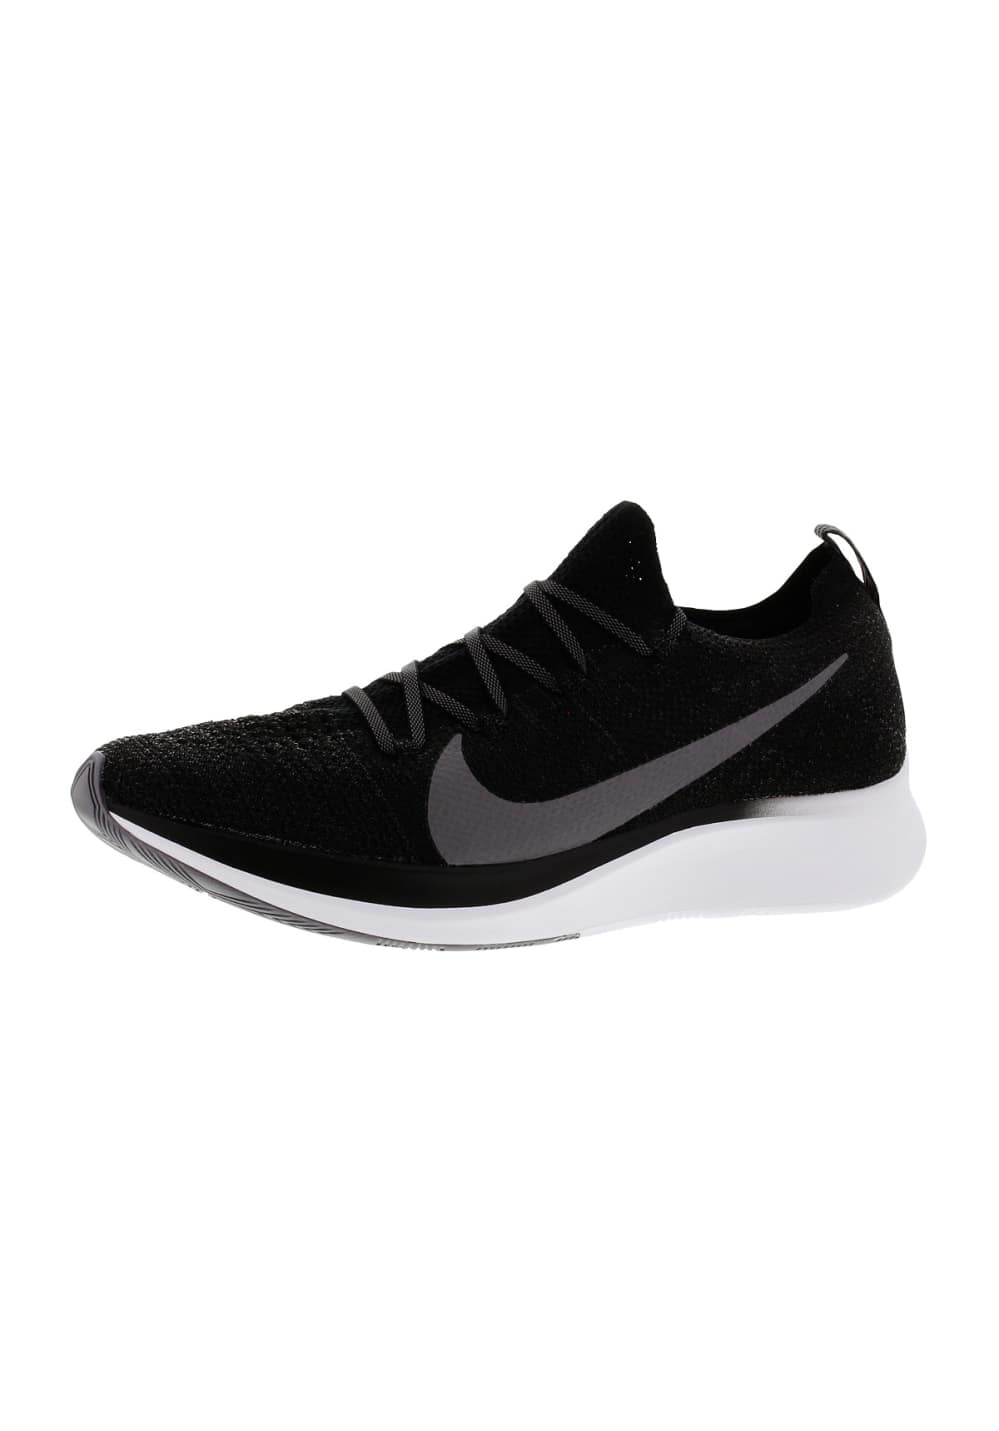 moins cher 1a1bf 6eb92 Nike Zoom Fly Flyknit - Chaussures running pour Homme - Noir